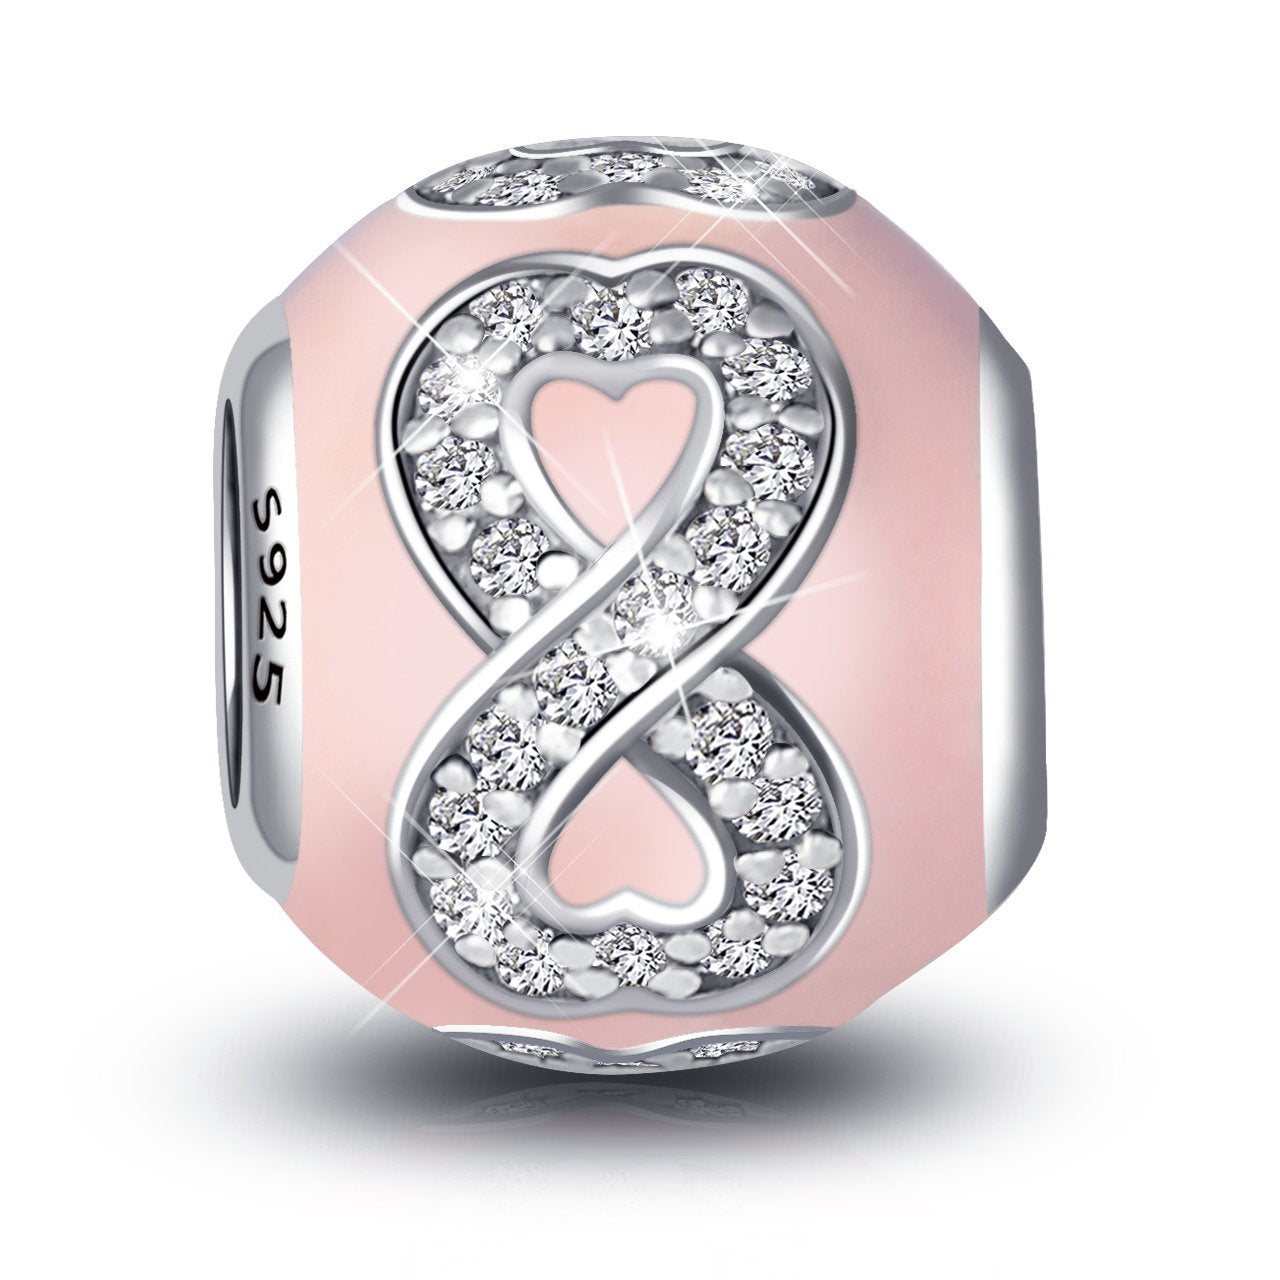 Infinite Love Pink Charm For Bracelet and Necklace in 925 Sterling Silver